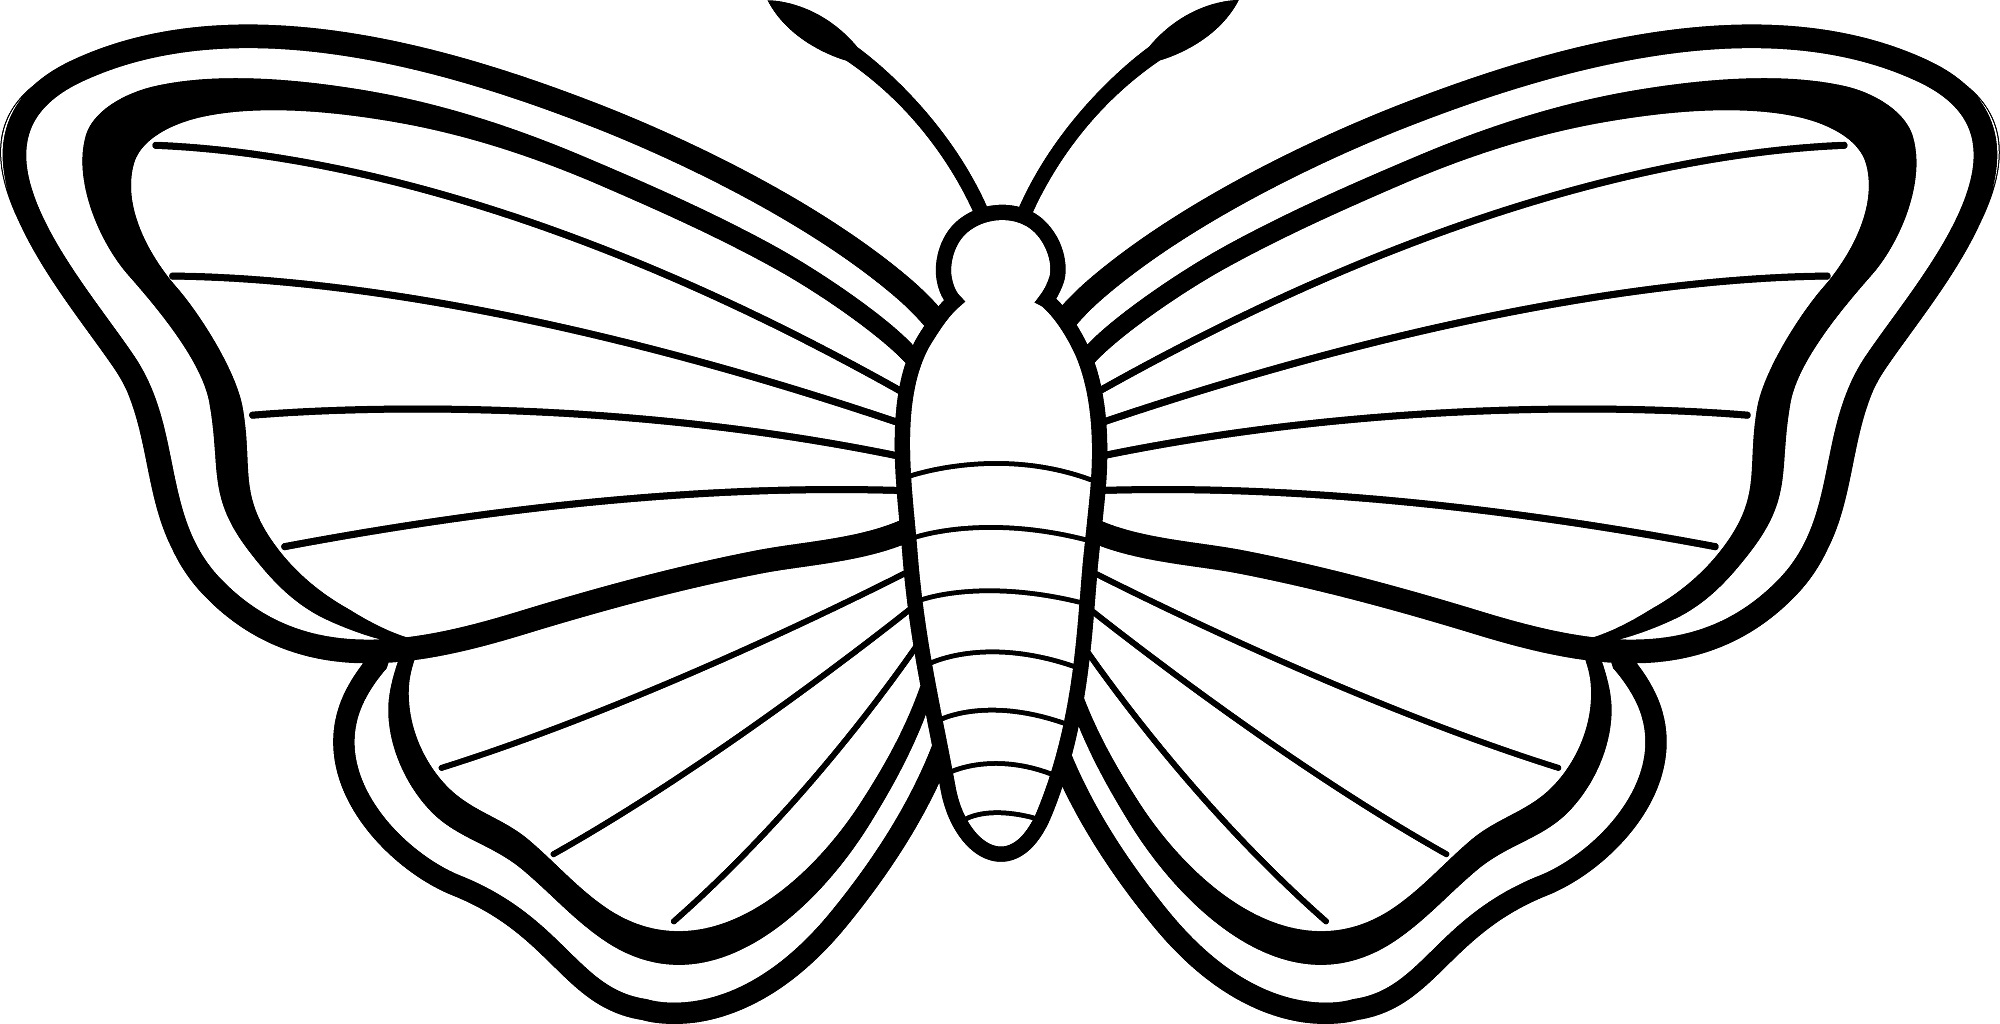 Butterfly coloring #18, Download drawings